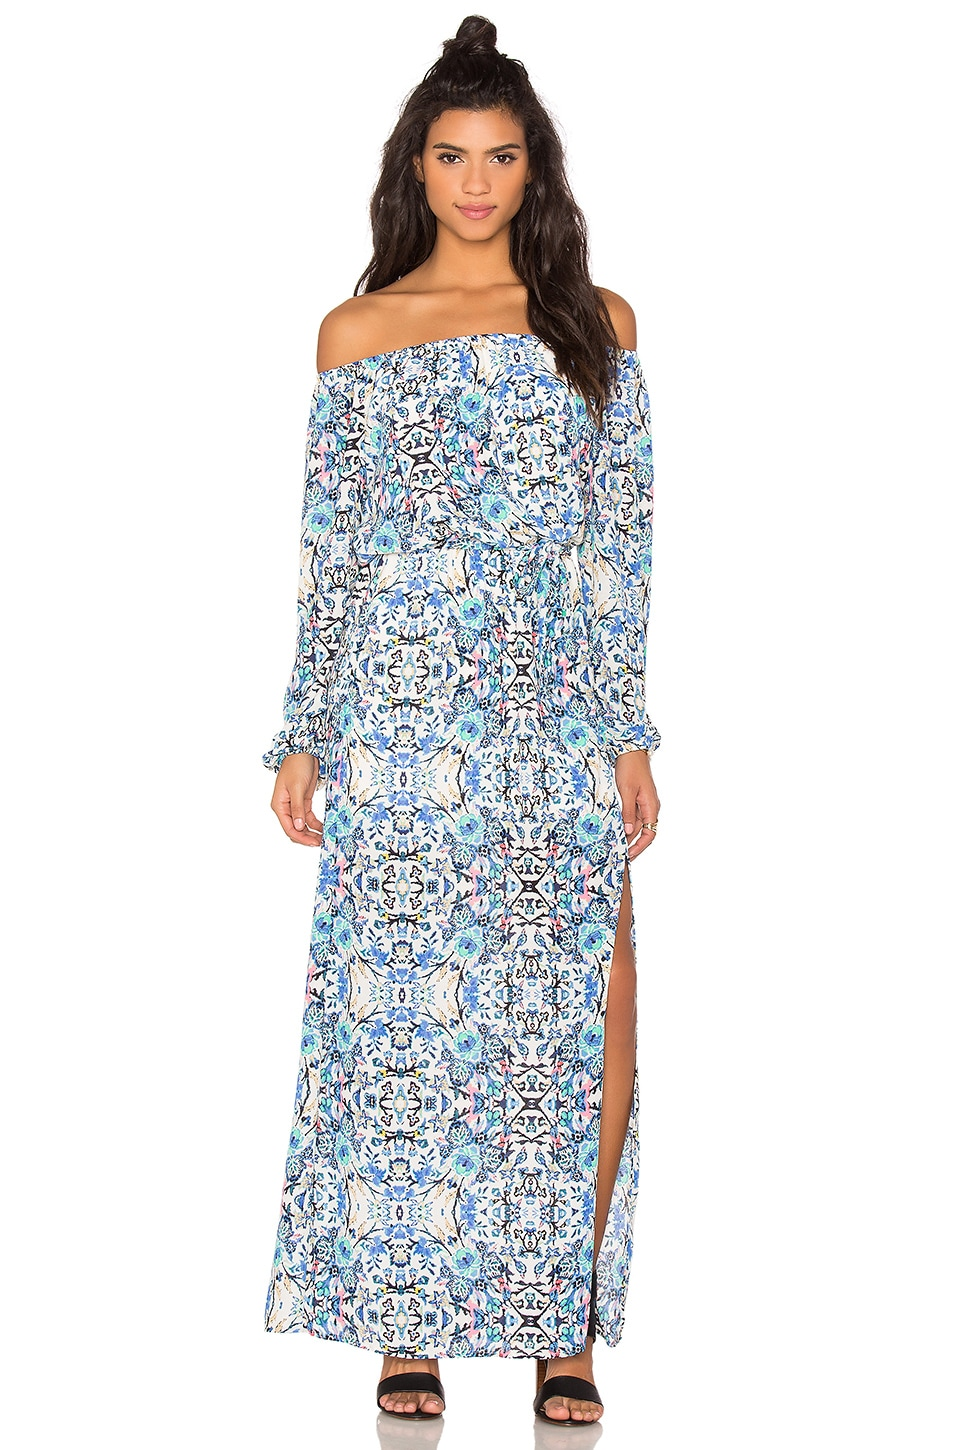 Eight Sixty Broken Bloom Maxi Dress in Blue & Multi